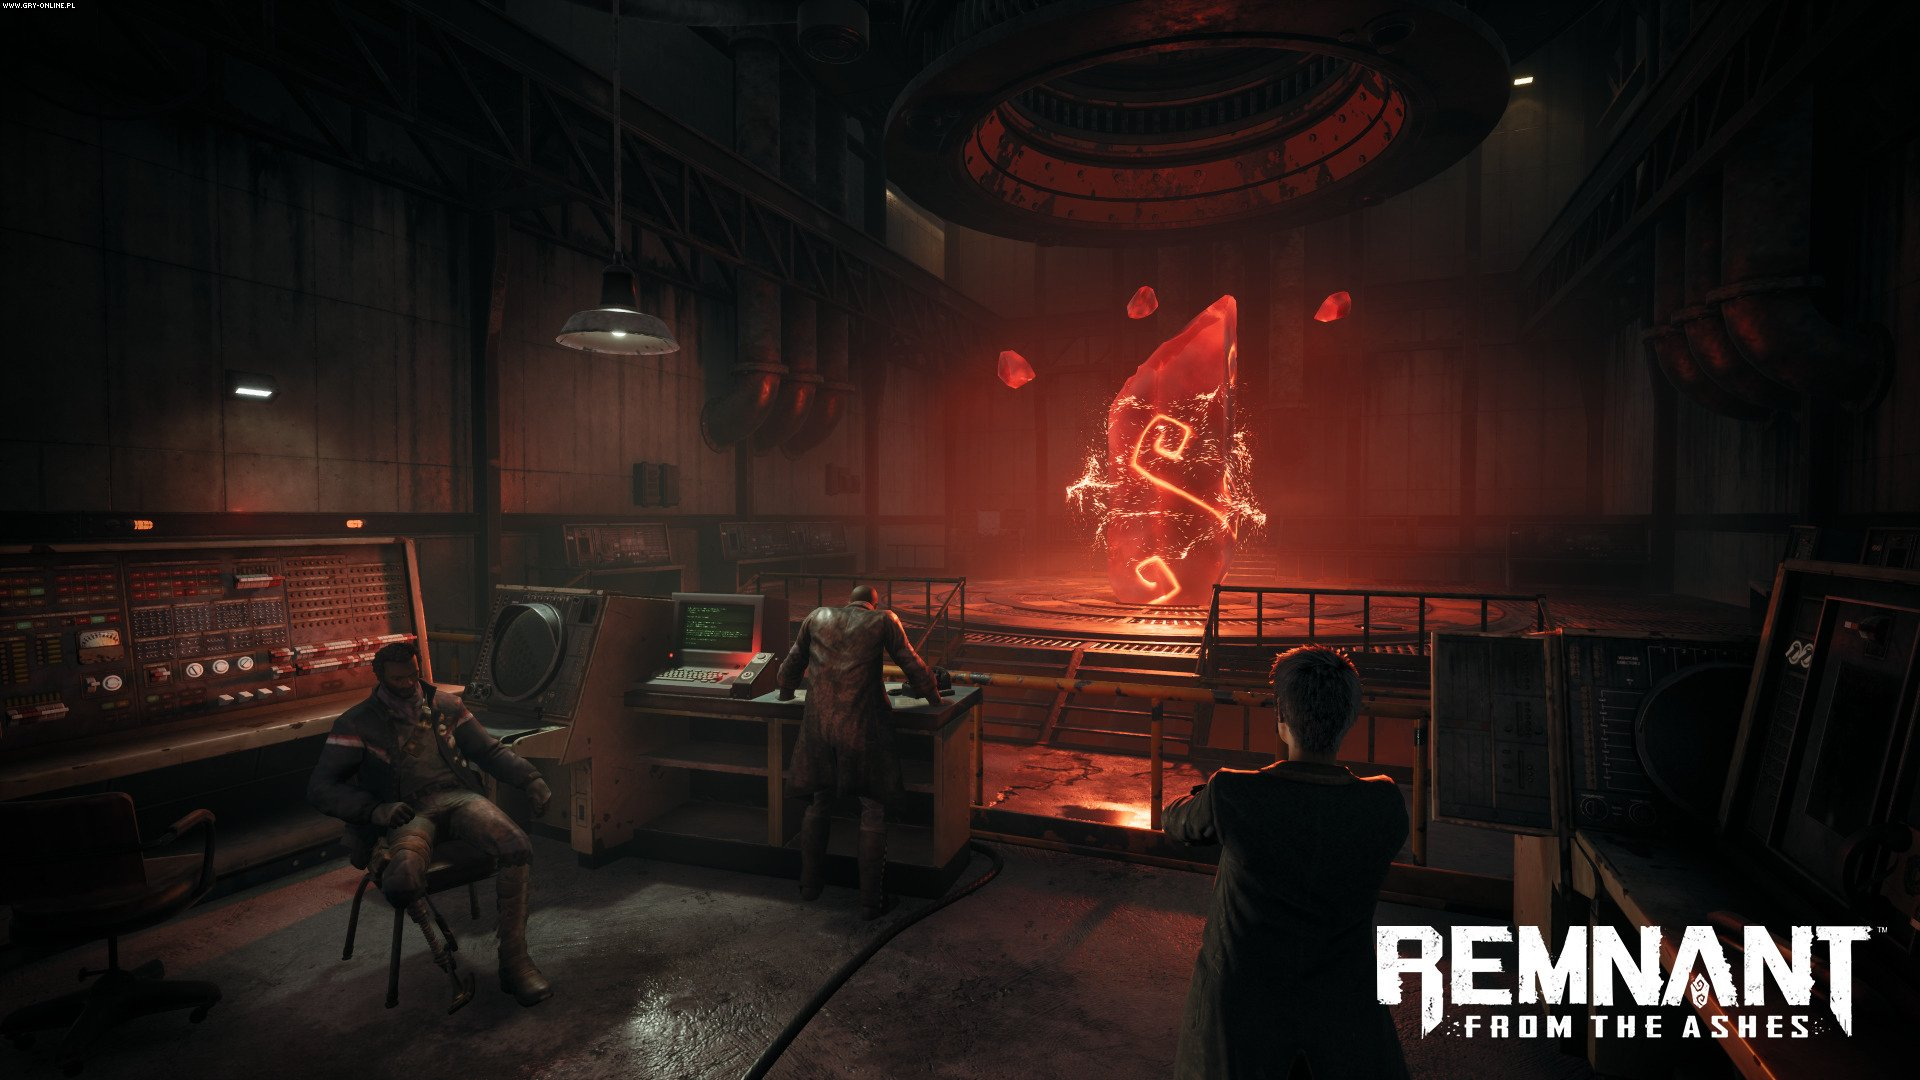 Remnant: From the Ashes PC, PS4, XONE Games Image 9/21, Gunfire Games, Perfect World Entertainment